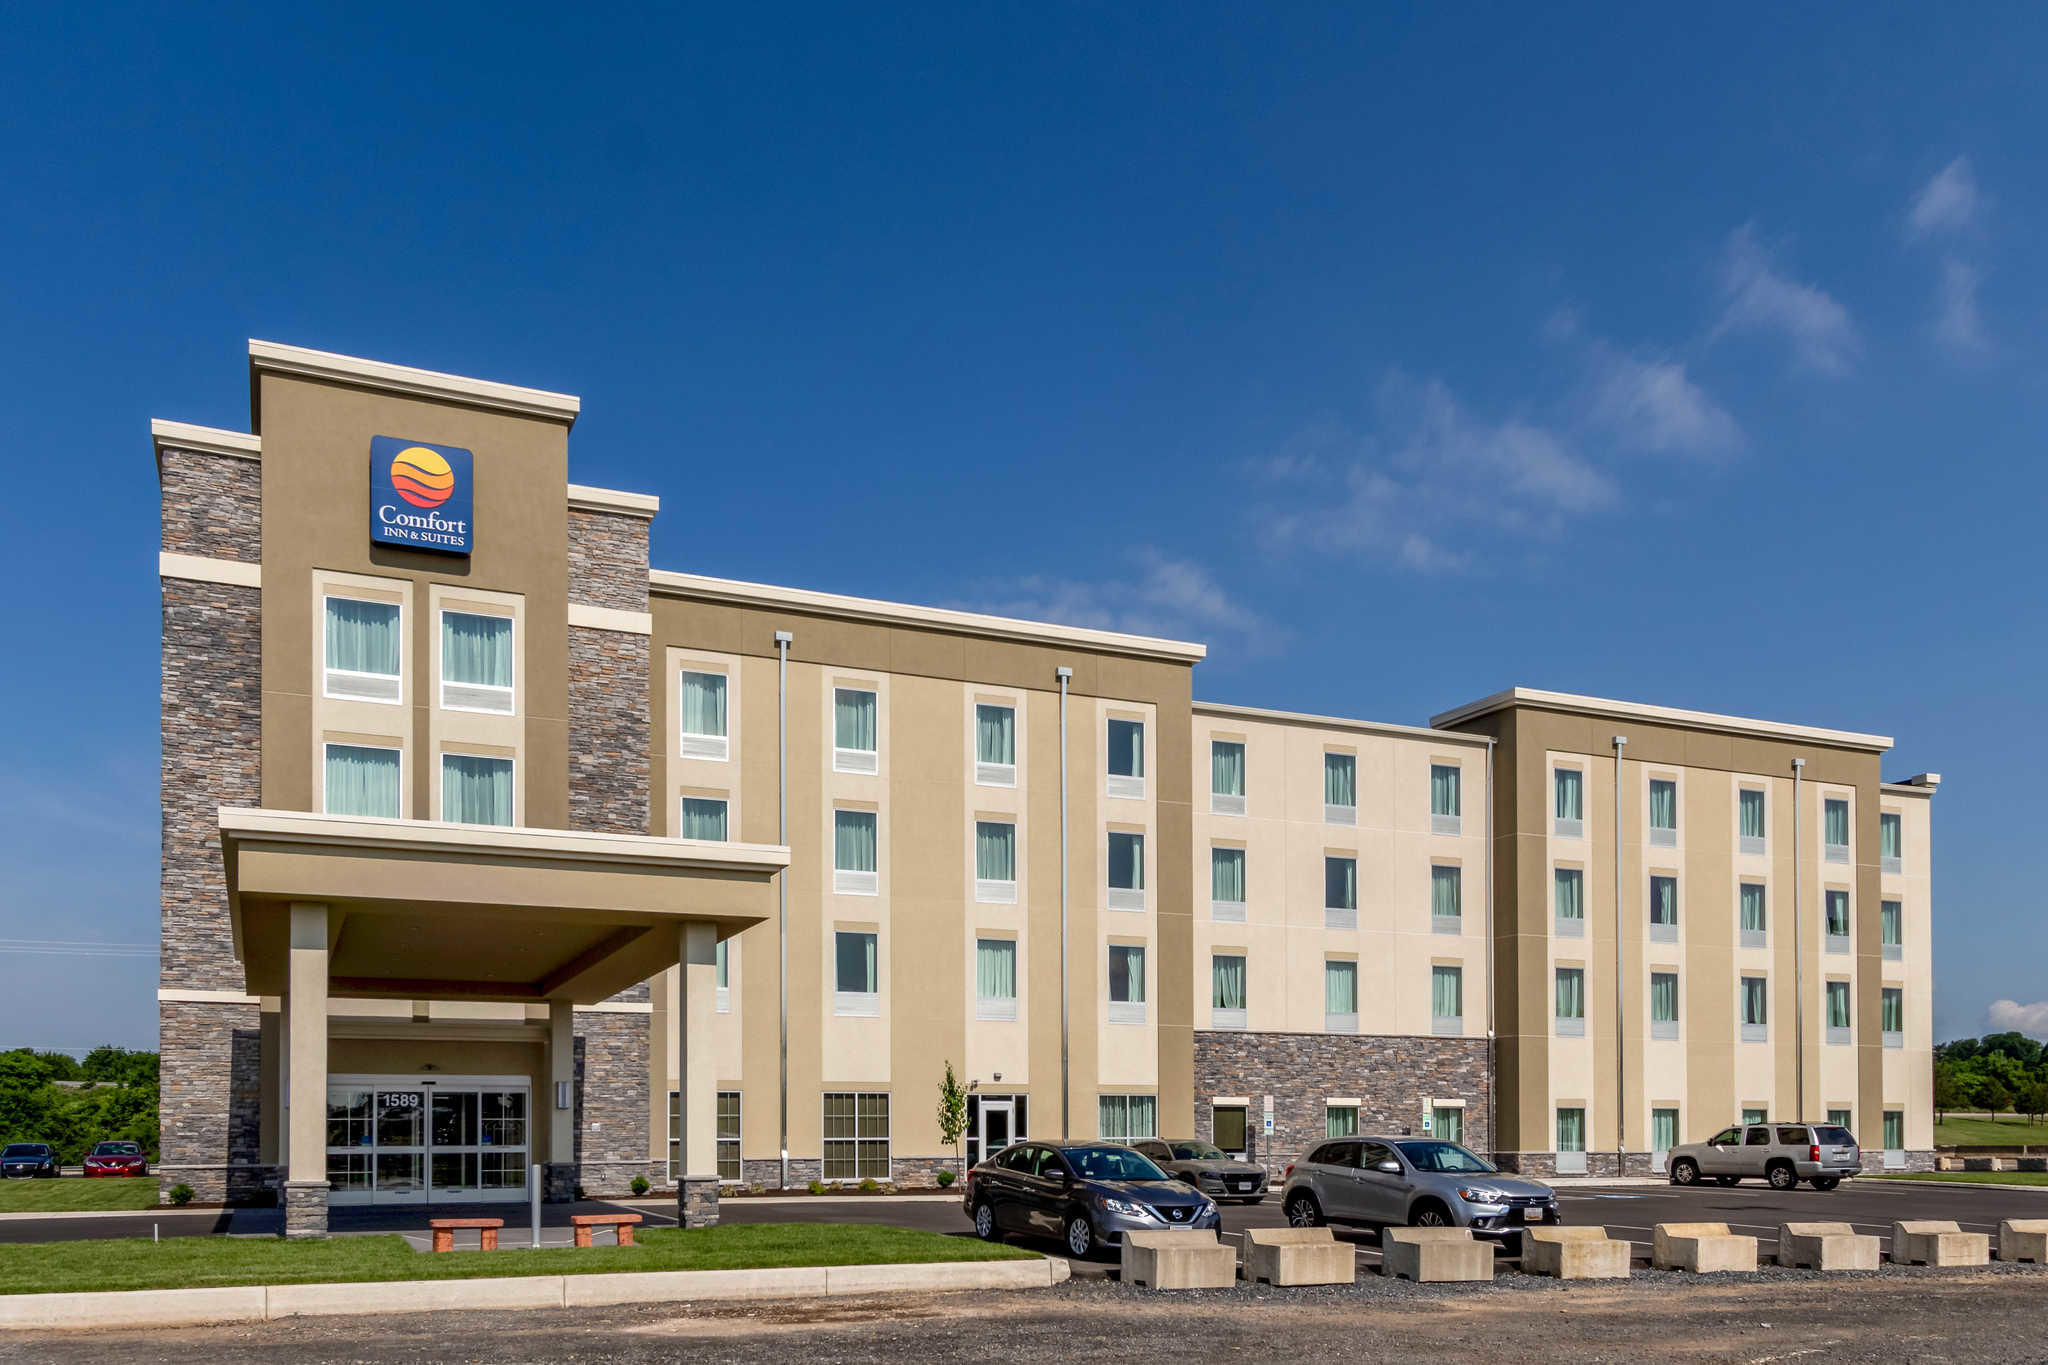 Comfort Inn & Suites - Harrisburg Airport - Hershey South image 1